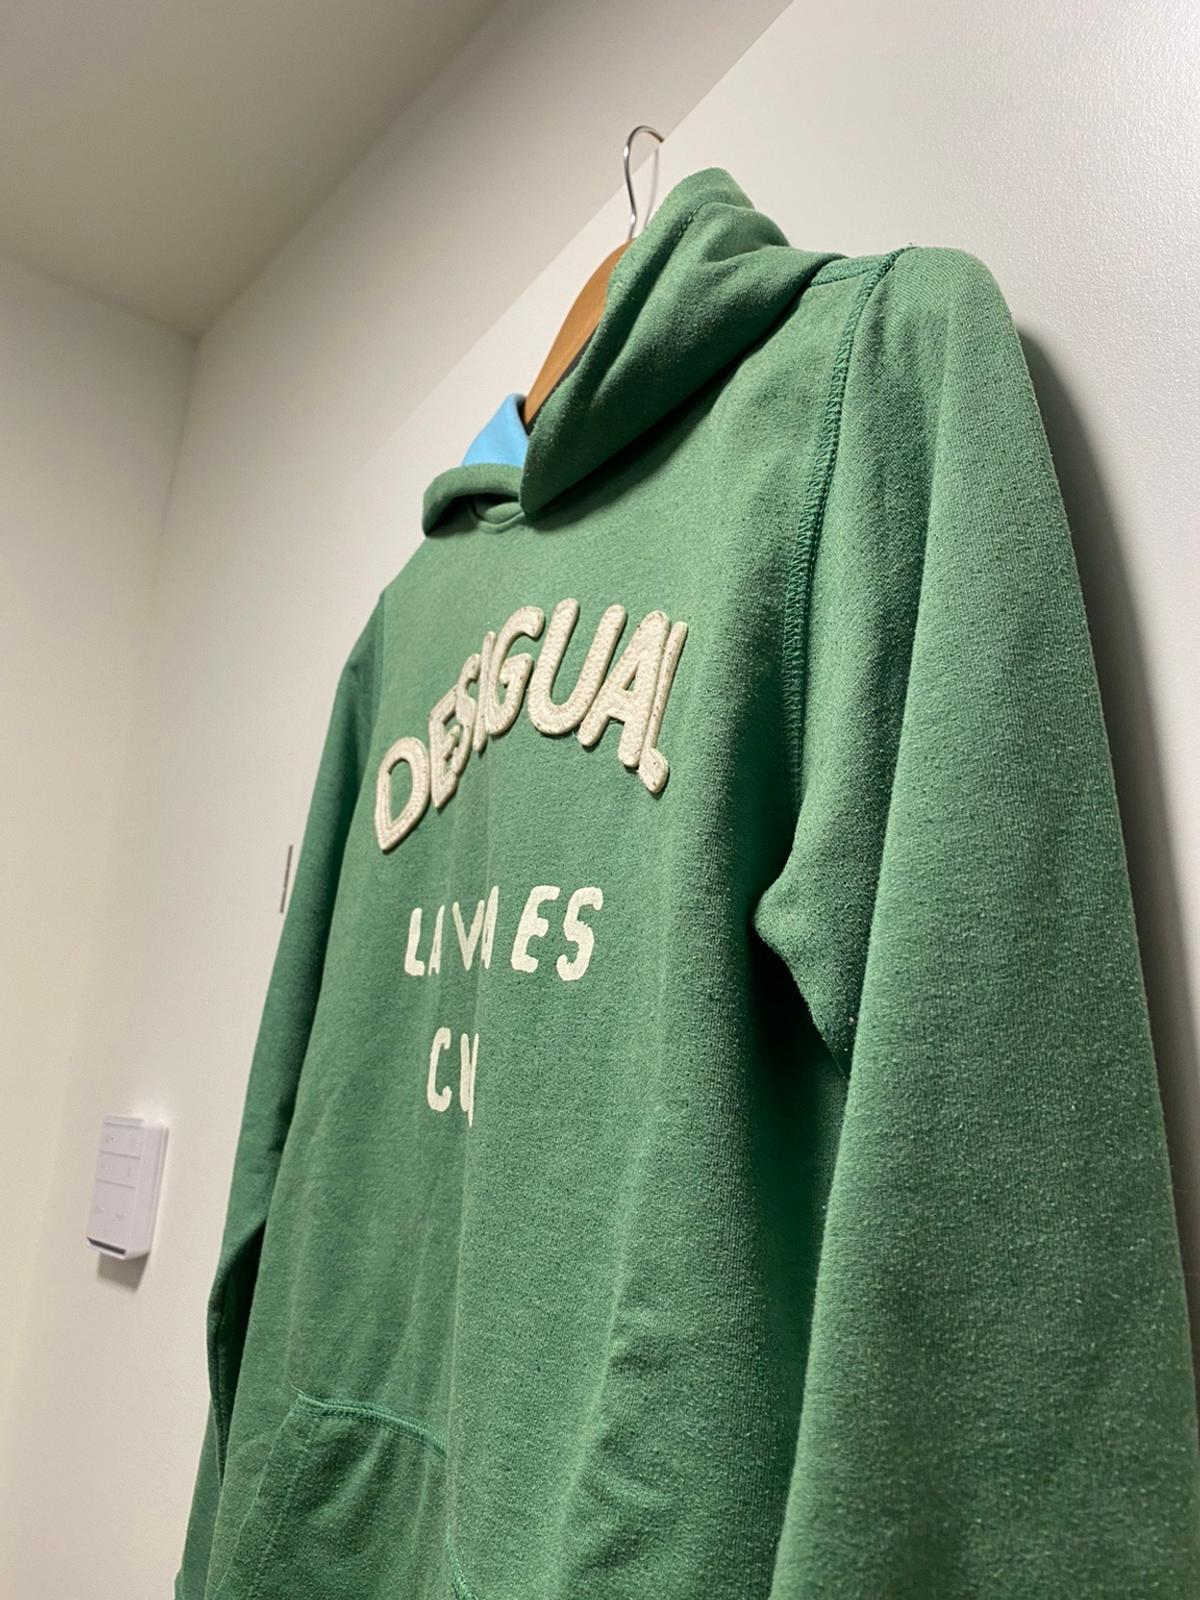 Desigual Sweatshirt grün S36 Damen in 1100 KG Favoriten für